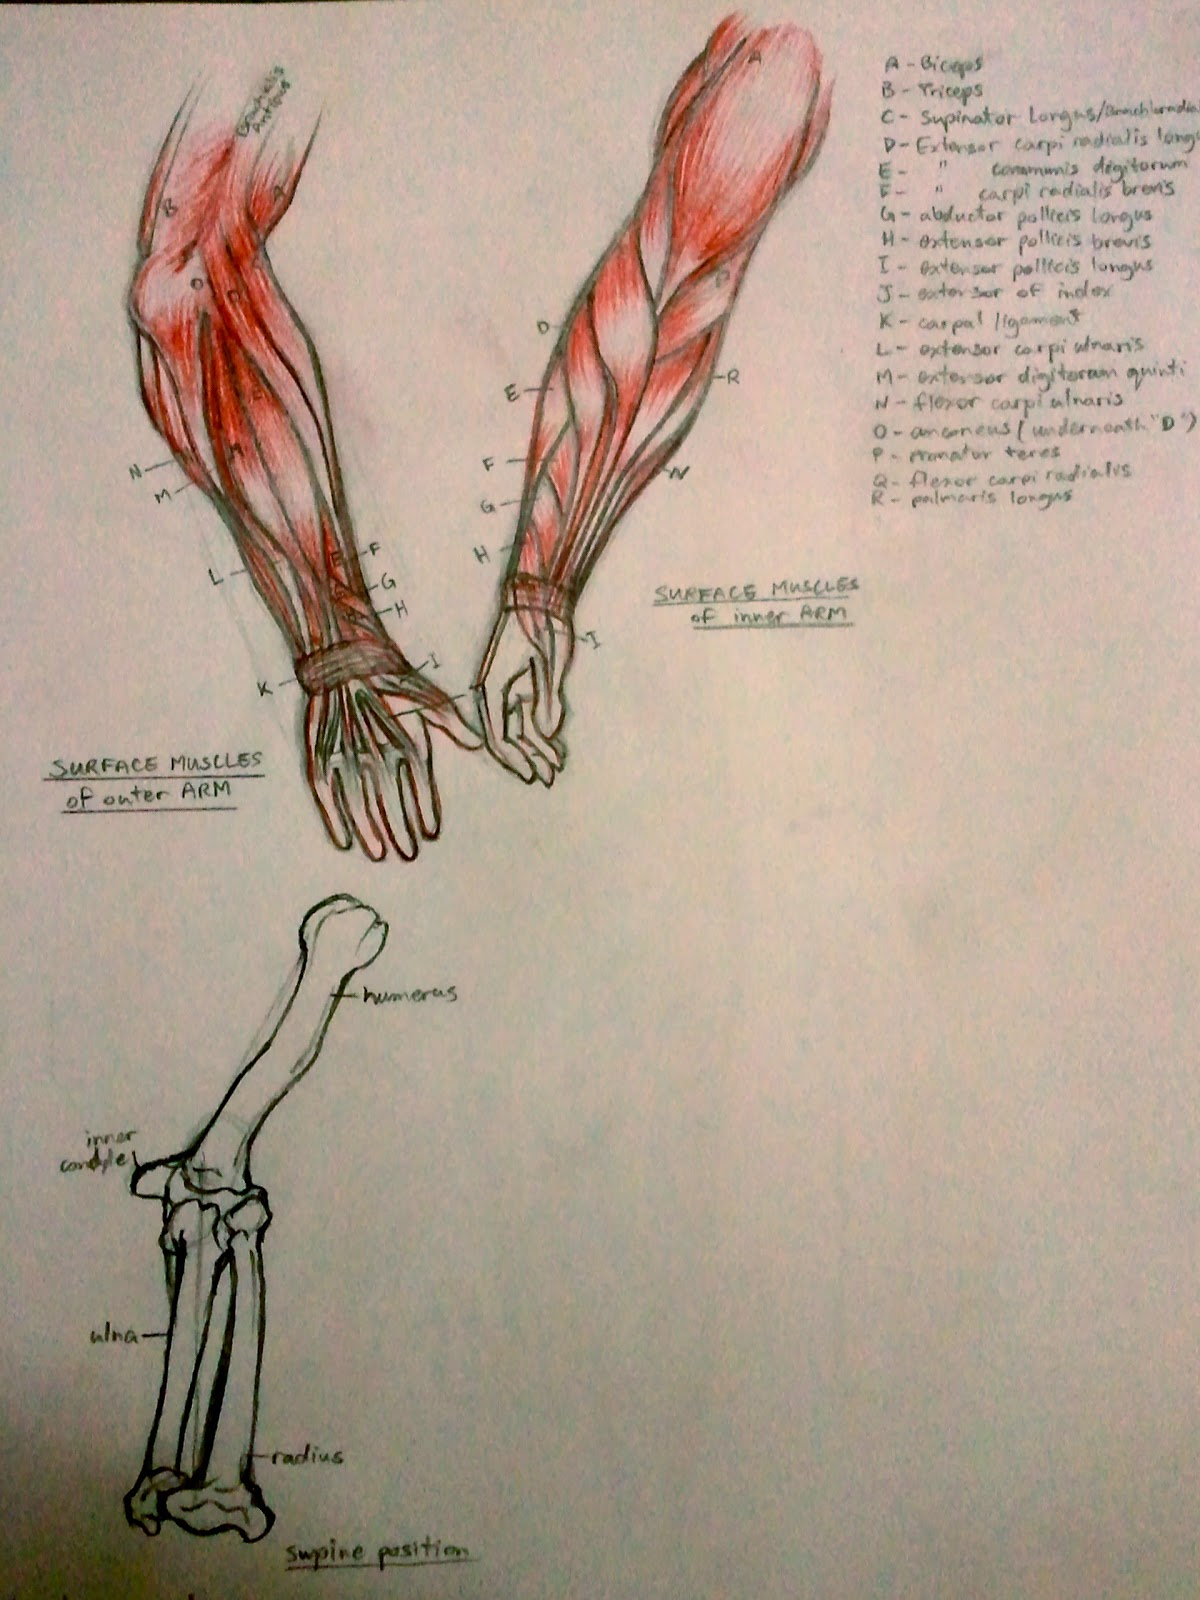 Anatomy of the arm muscles